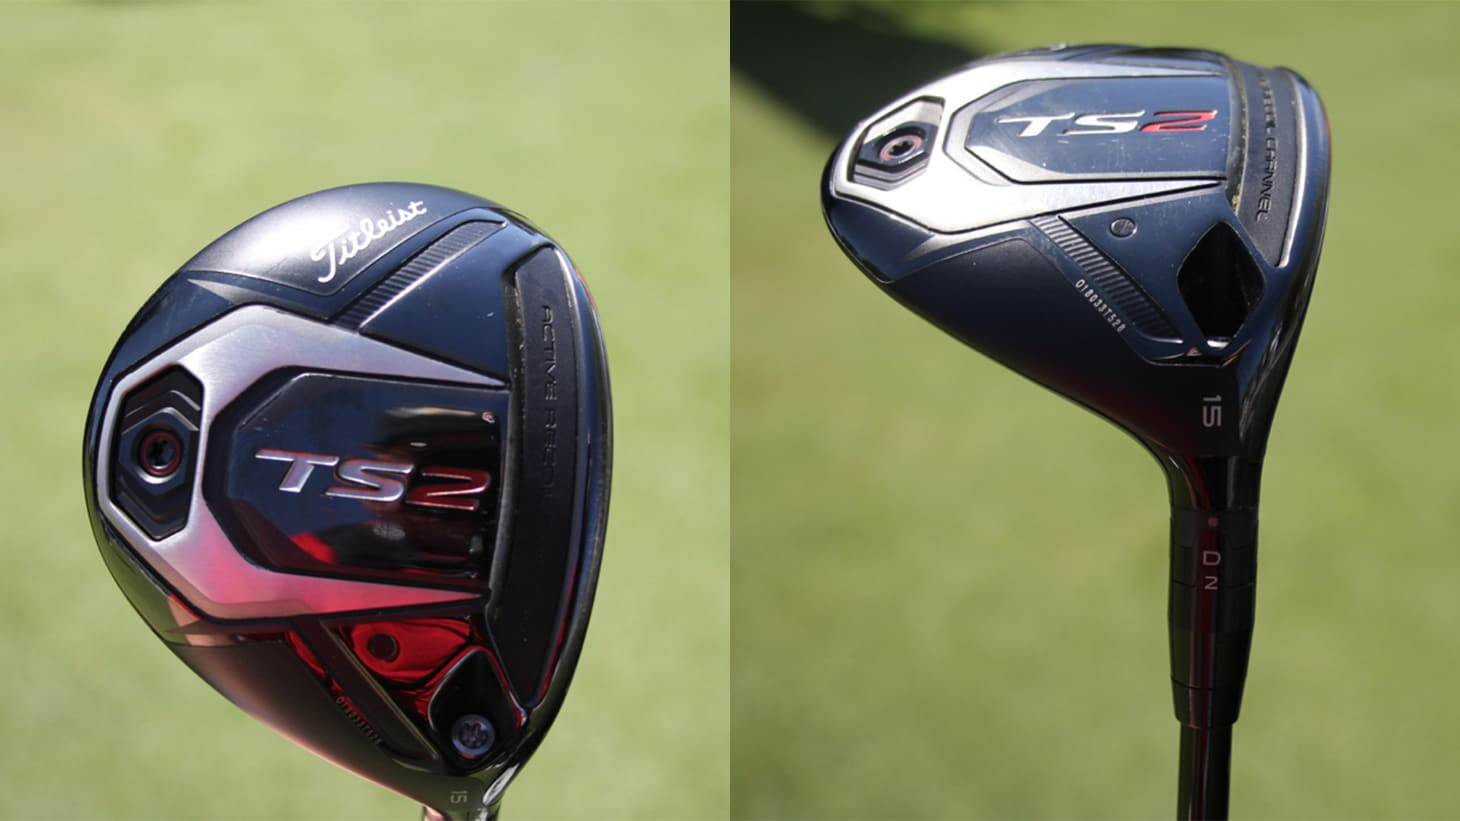 TS2 (15.0°) fairway metal